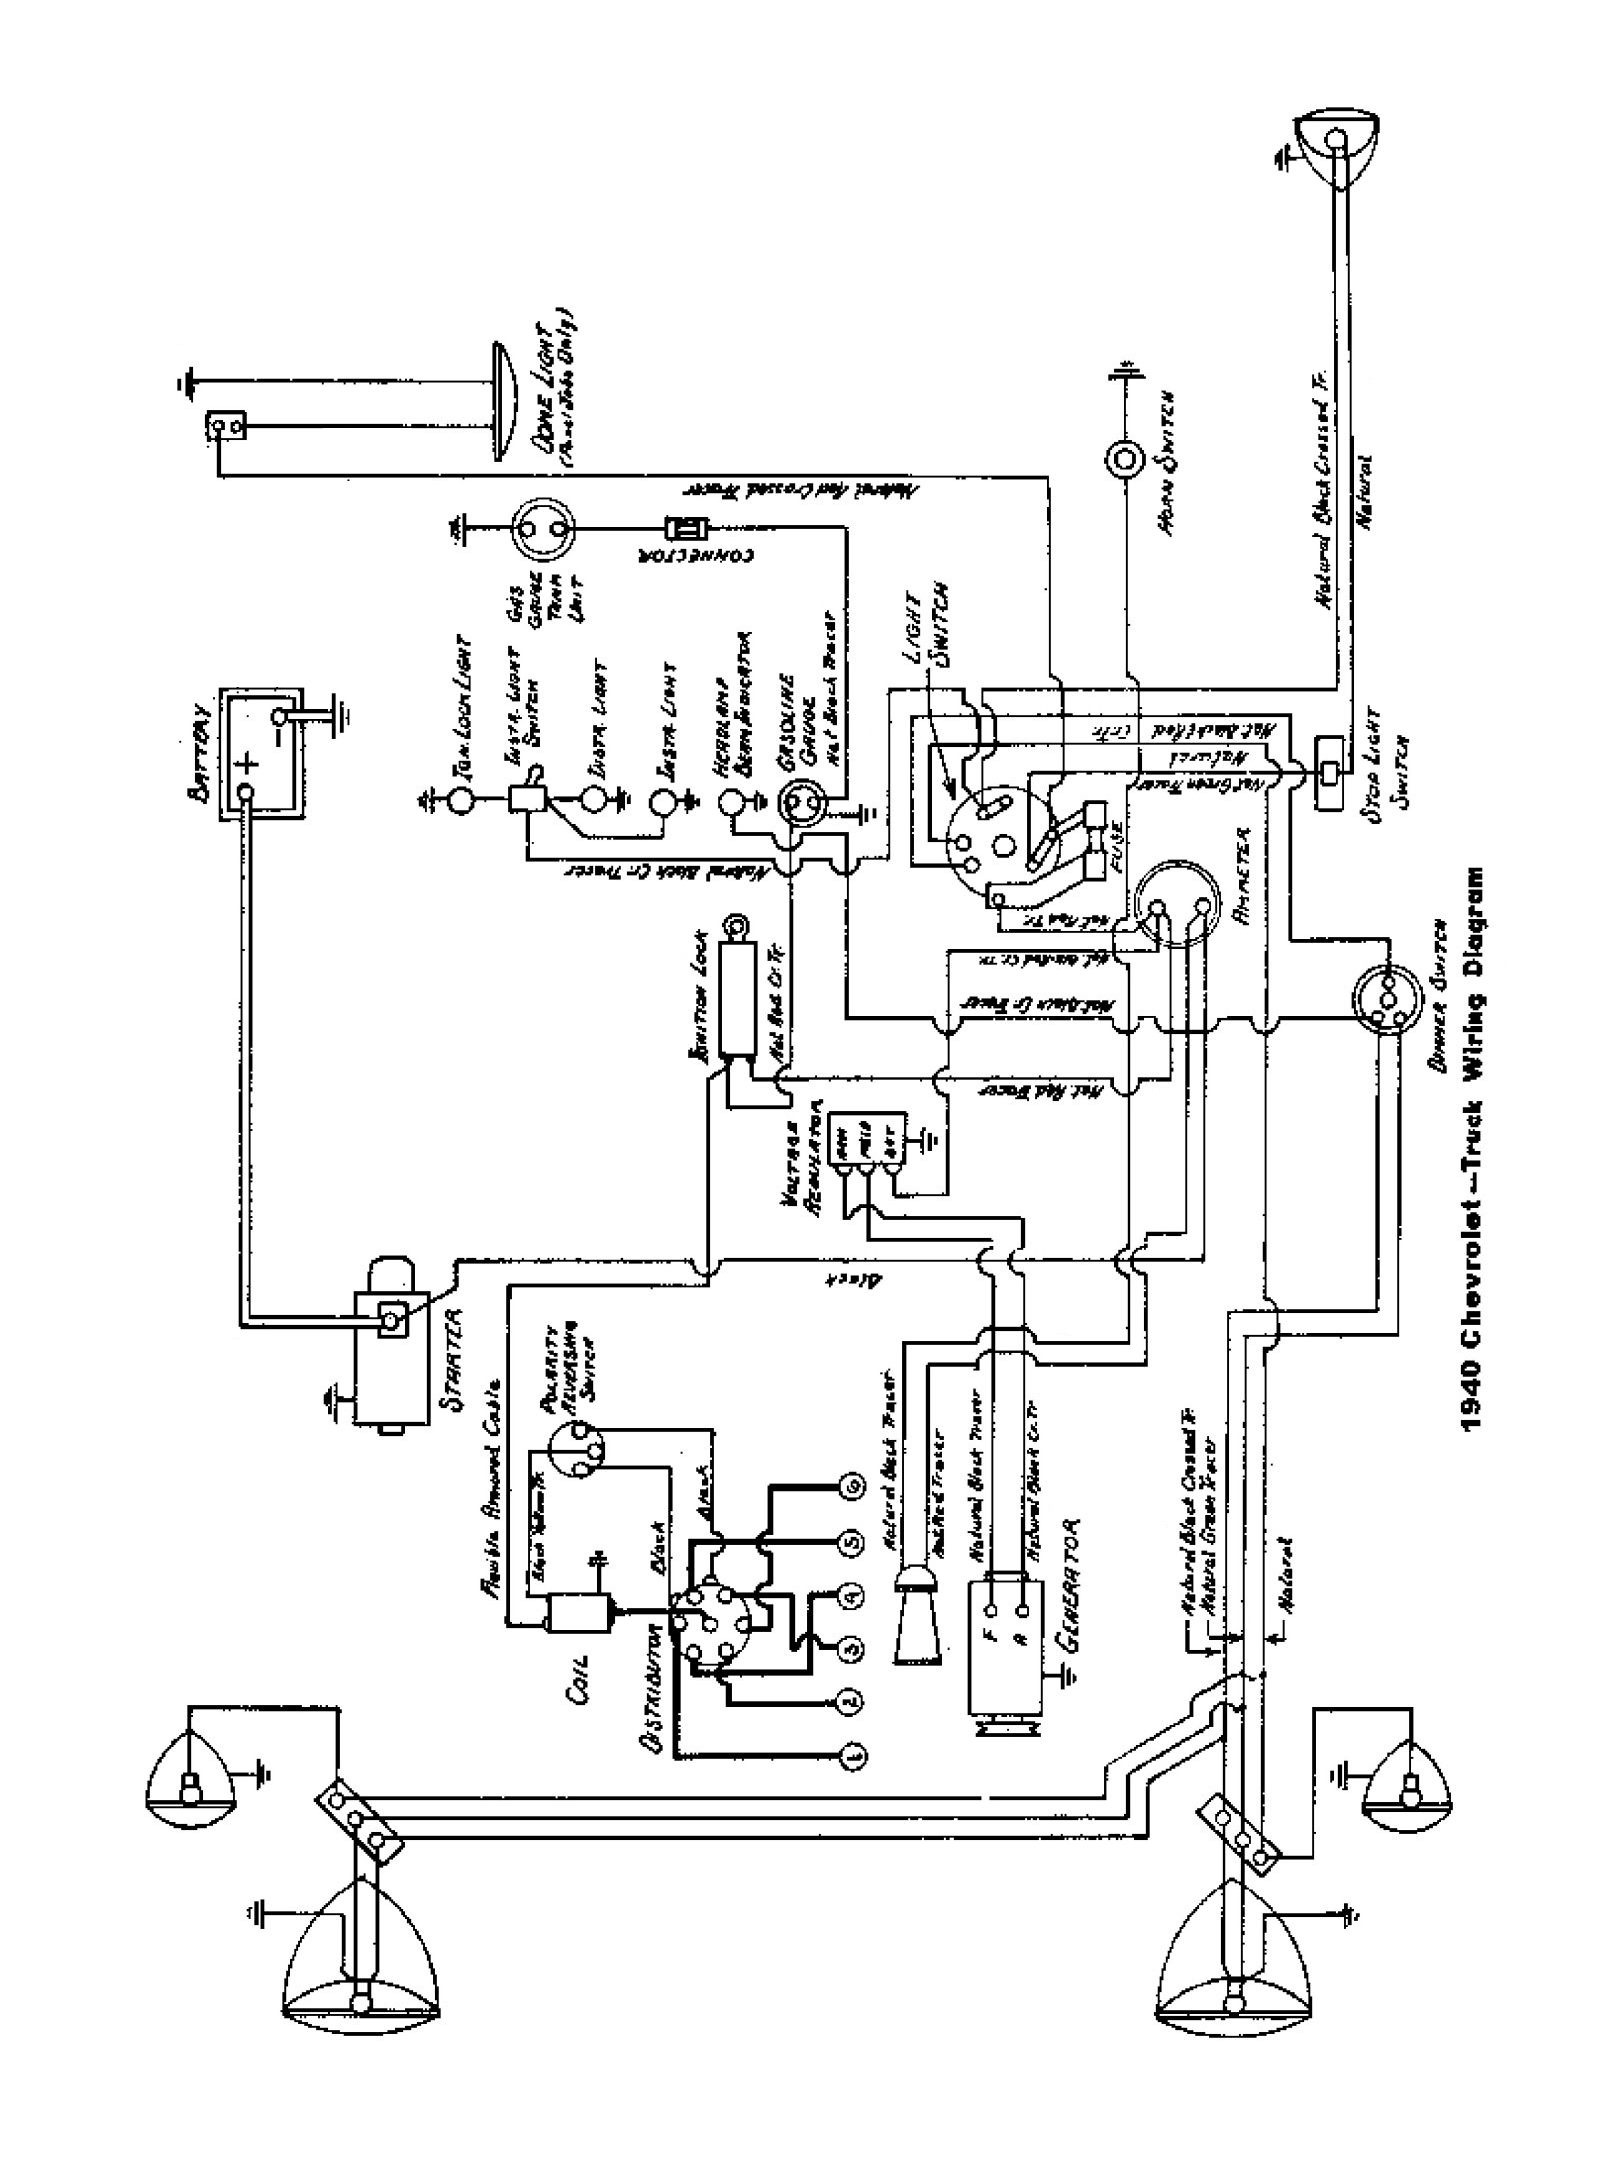 Gm One Wire Alternator Wiring Diagram As Well Air Conditioning Wiring